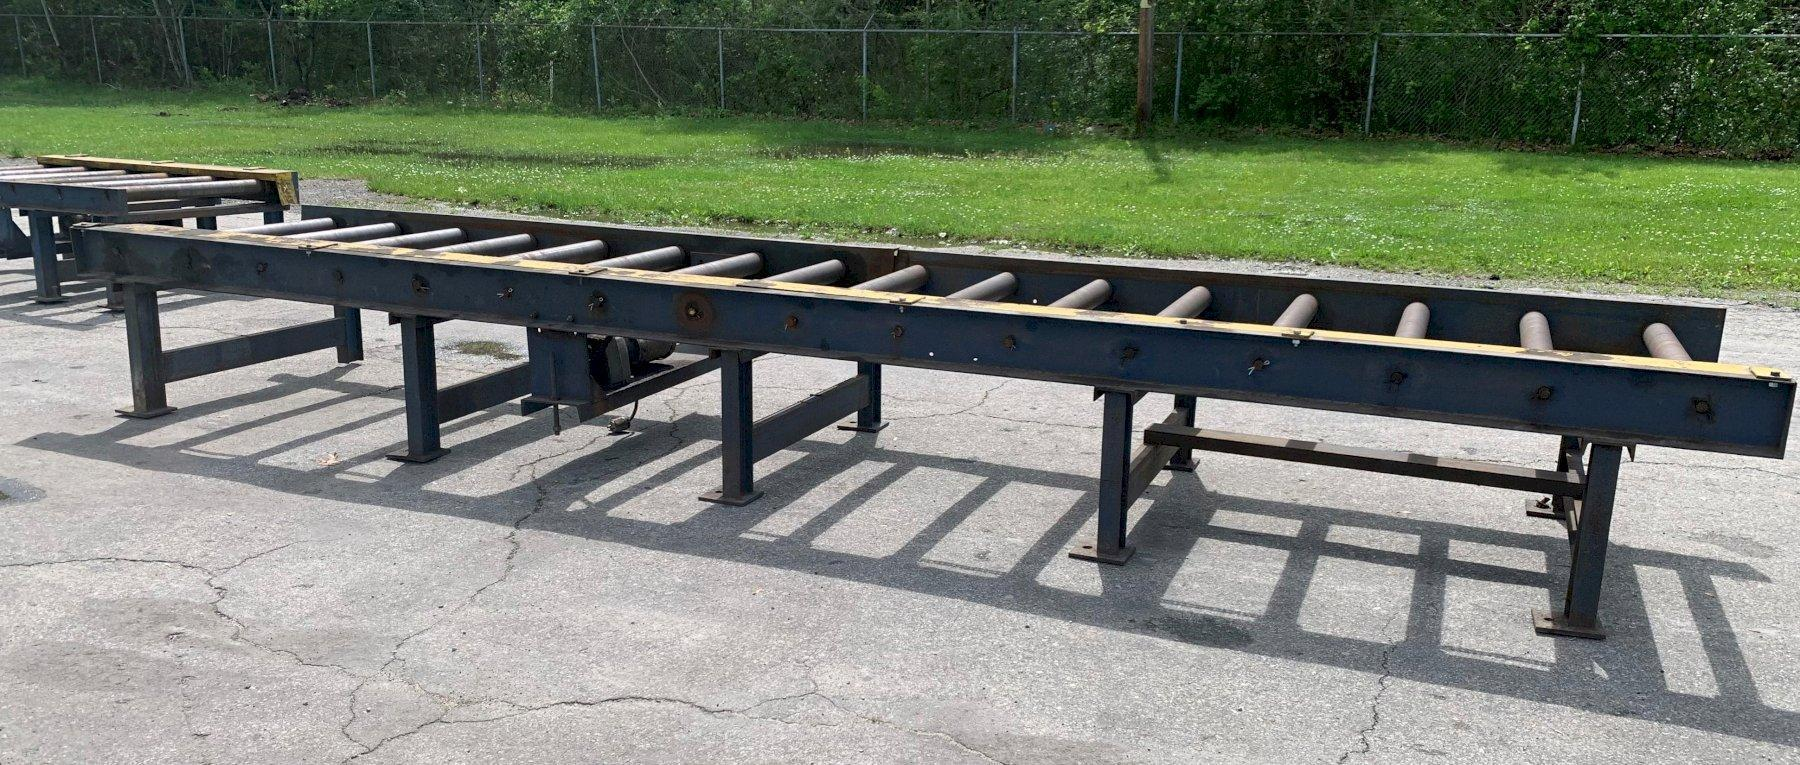 "40"" WIDE HEAVY DUTY CHAIN DRIVEN POWERED ROLLER CONVEYOR: STOCK #12946"